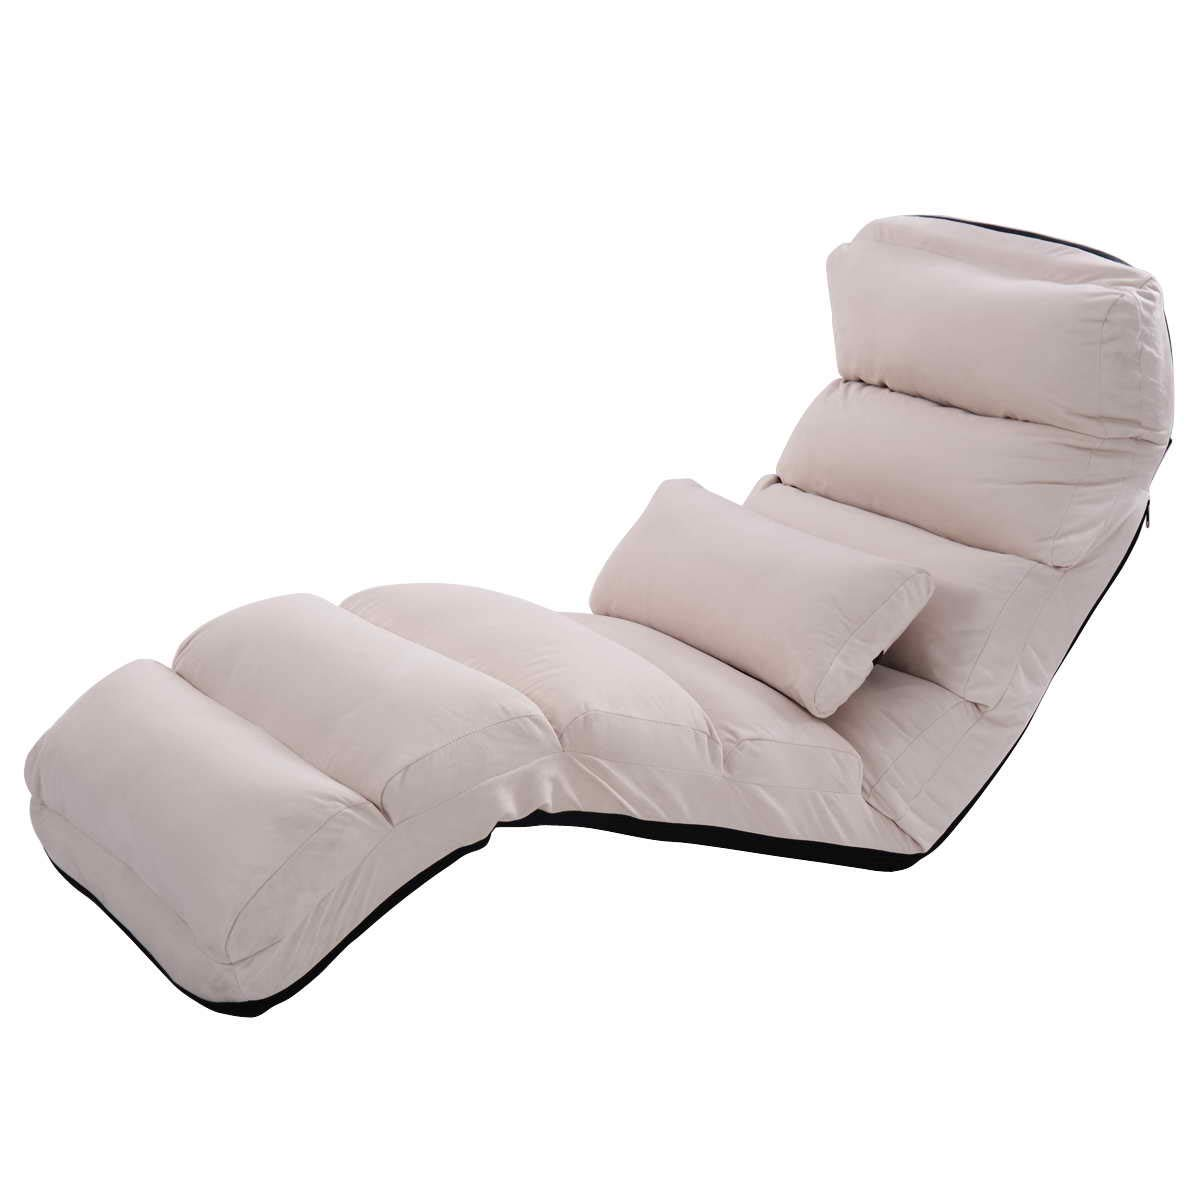 Giantex Folding Lazy Sofa Chair Stylish Sofa Couch Beds Lounge Chair W/Pillow (Beige) by Giantex